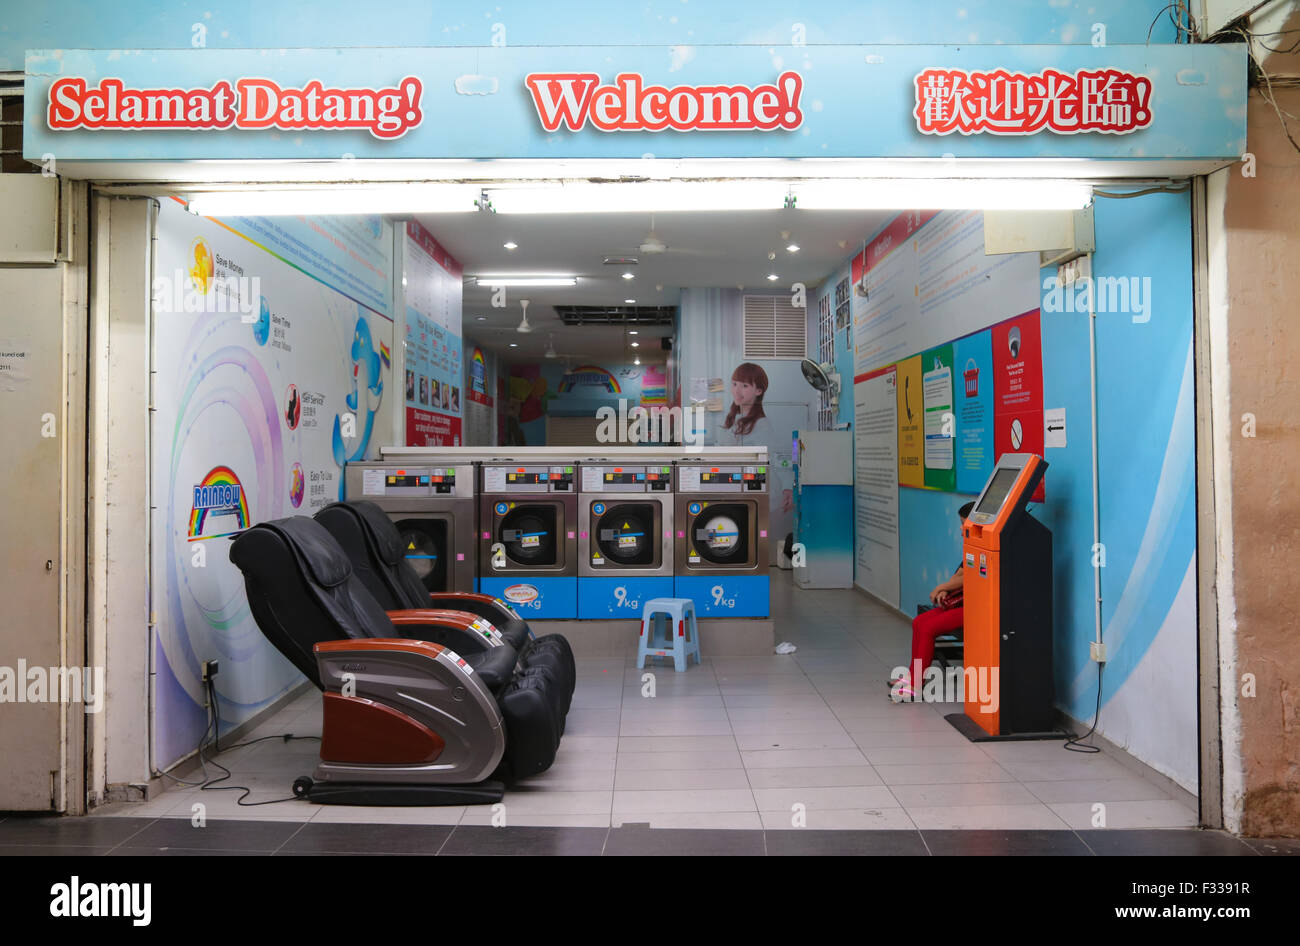 Laundry shop stock photos laundry shop stock images alamy selft service laundry shop at chinatown petaling street kuala lumpur malaysia stock solutioingenieria Images